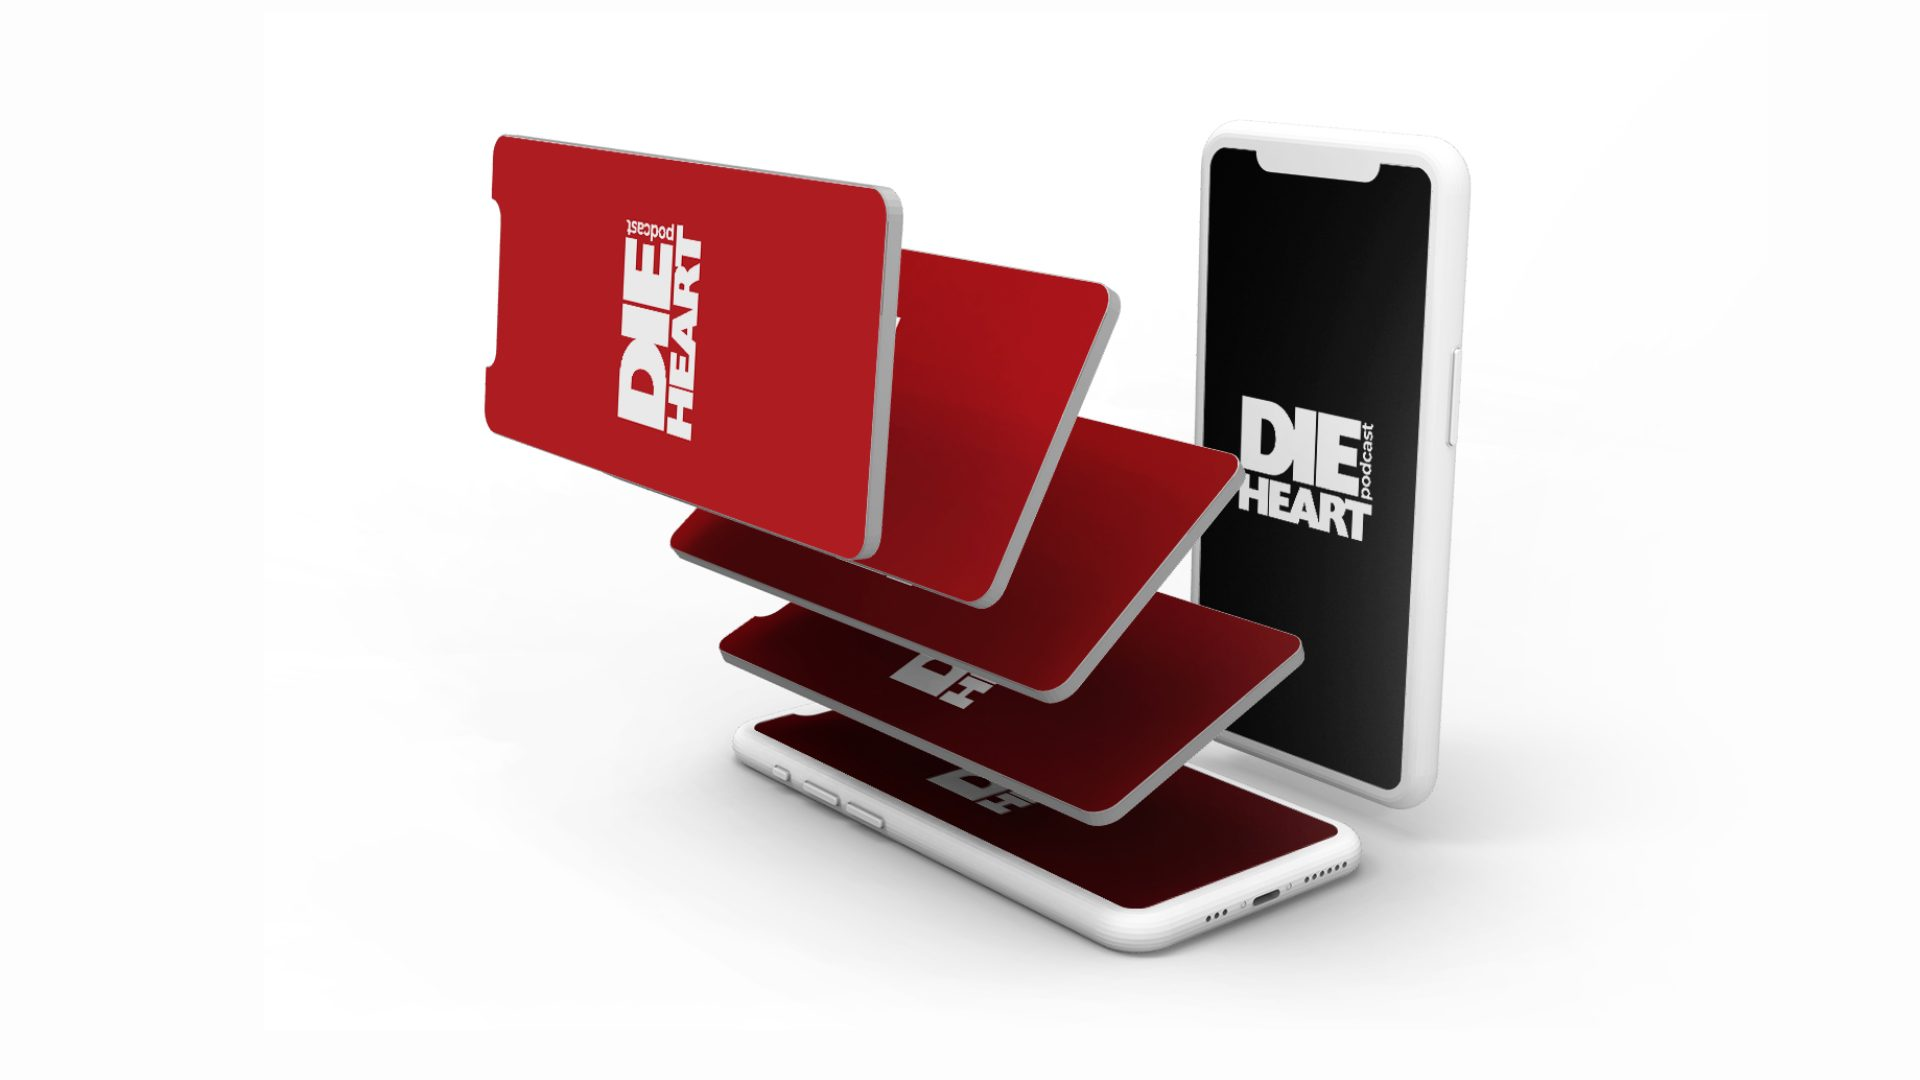 Die Heart Podcast - Logo Design Mockup 02